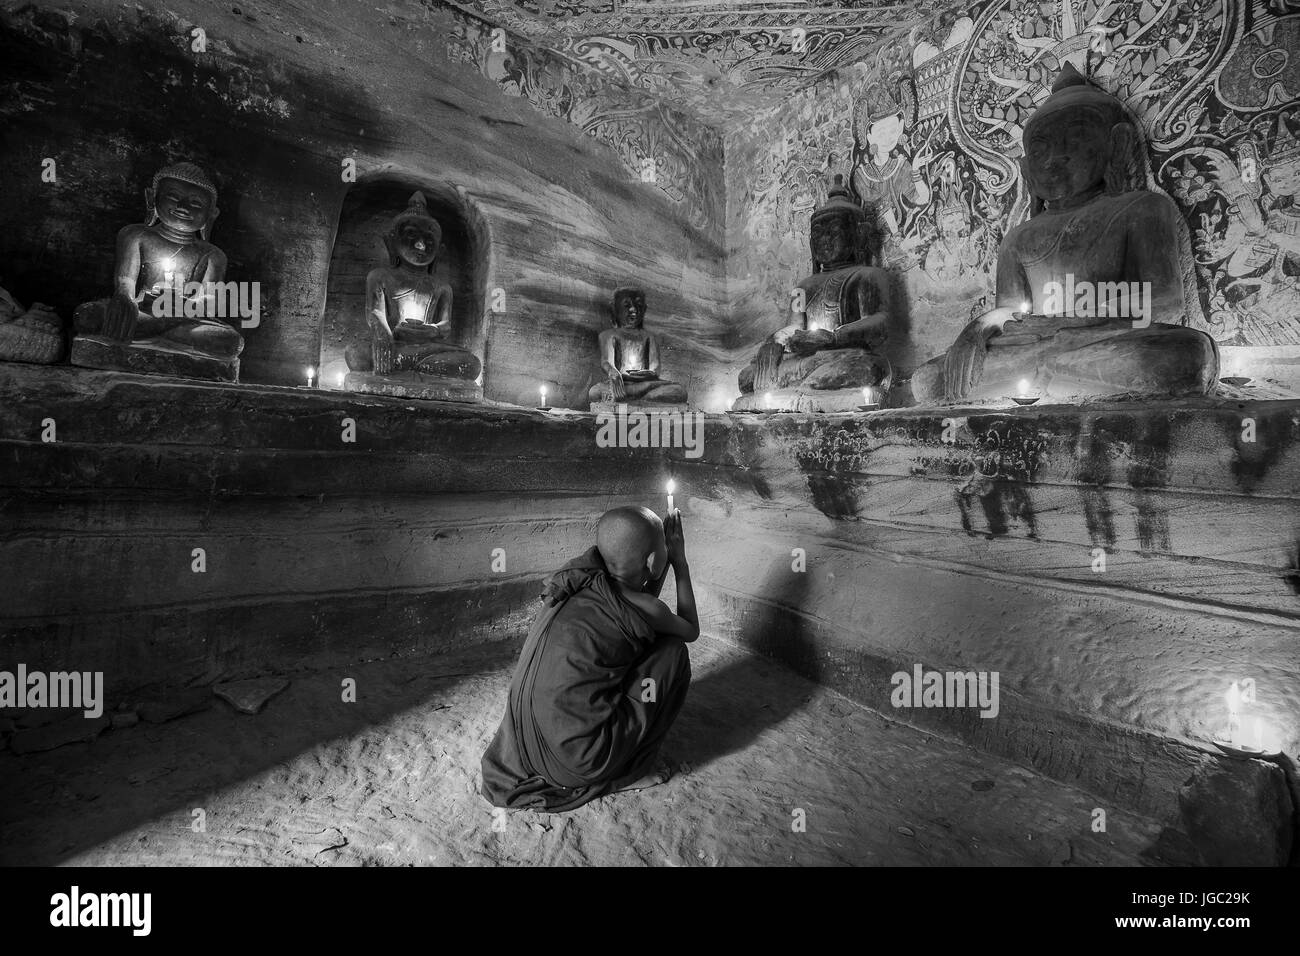 Monk praying with candle light at Po Win Taung / Hpowindaung cave - Monywa - Sagaing region - Northern Myanmar - Stock Image